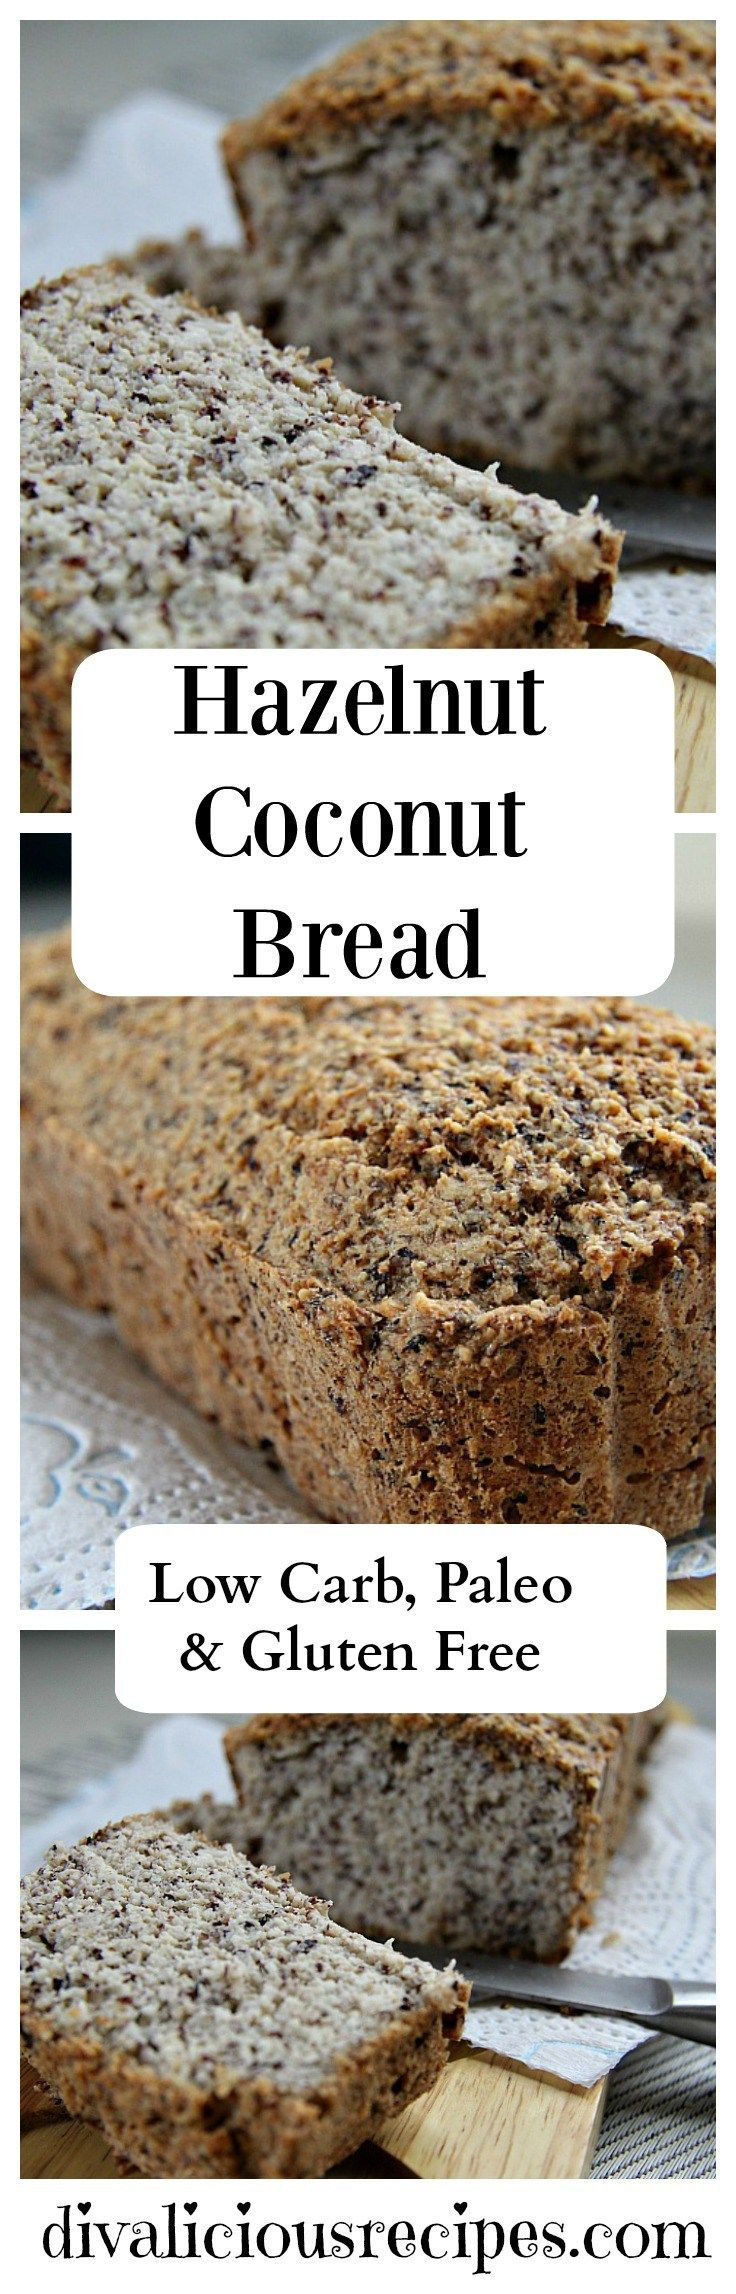 An easy low carb & gluten free bread with no sugar or sugar substitute. The hazelnut flour makes it sweet enough!  http://divaliciousrecipes.com/2016/11/07/hazelnut-coconut-bread/